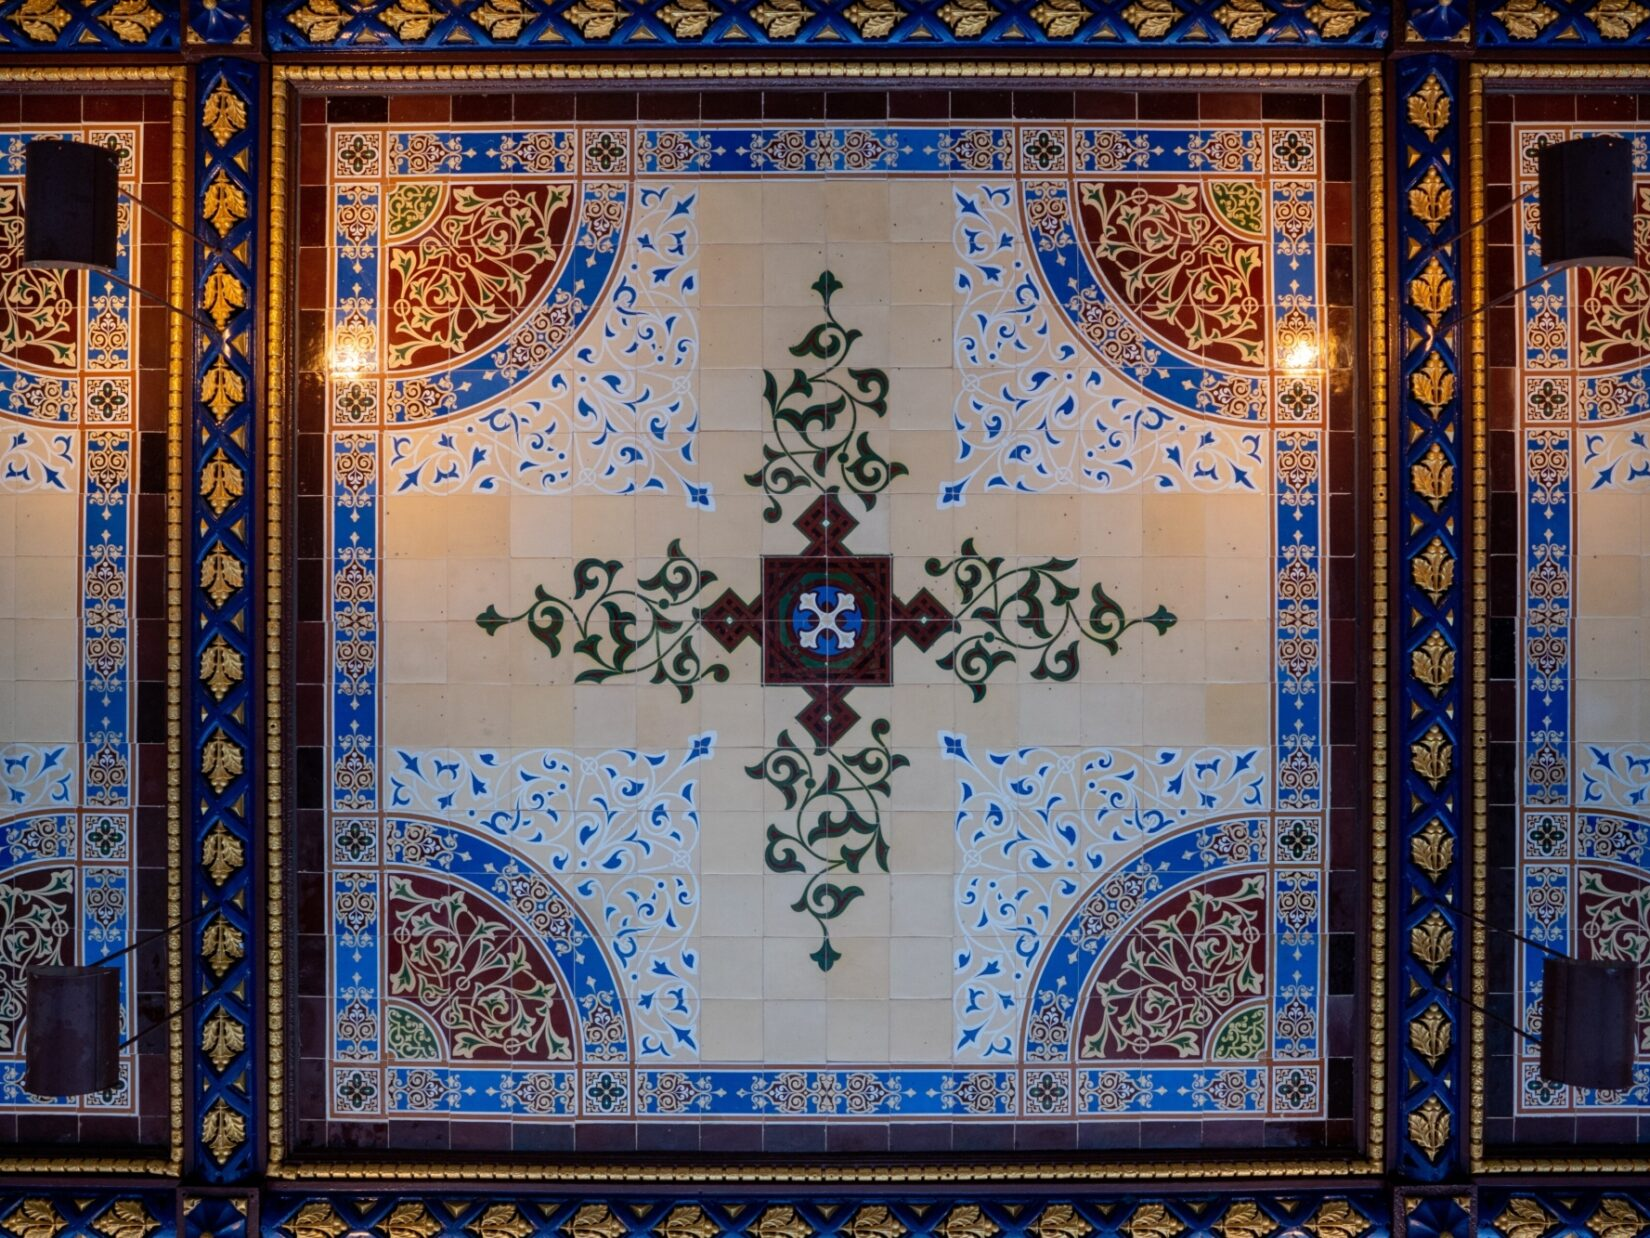 Looking straight up at the Minton Tiles